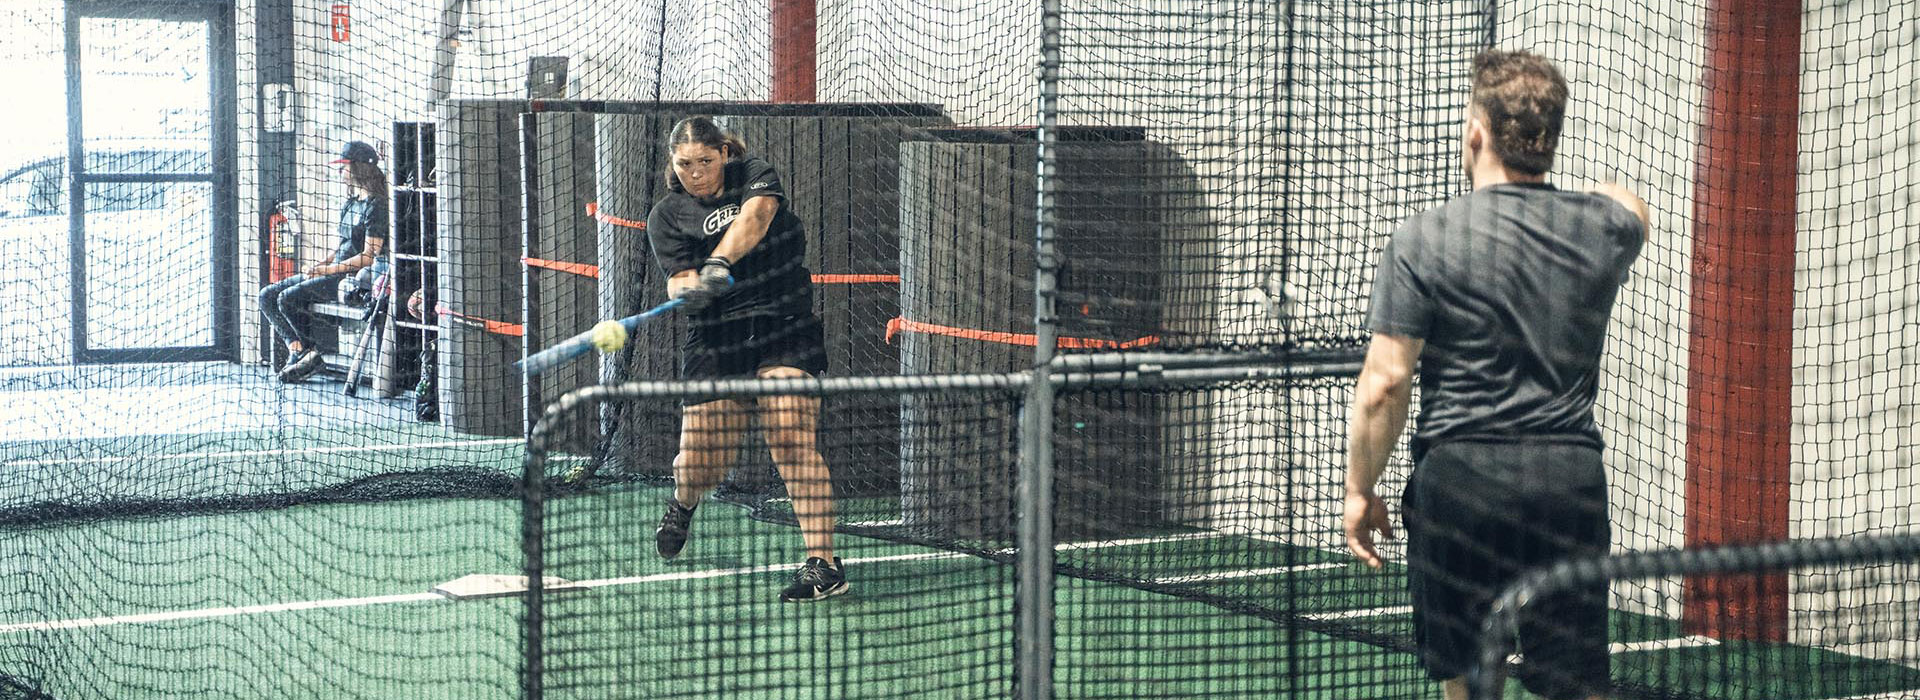 Speed Mechanics Facility Enclosed Netted Area for Baseball Batting cage